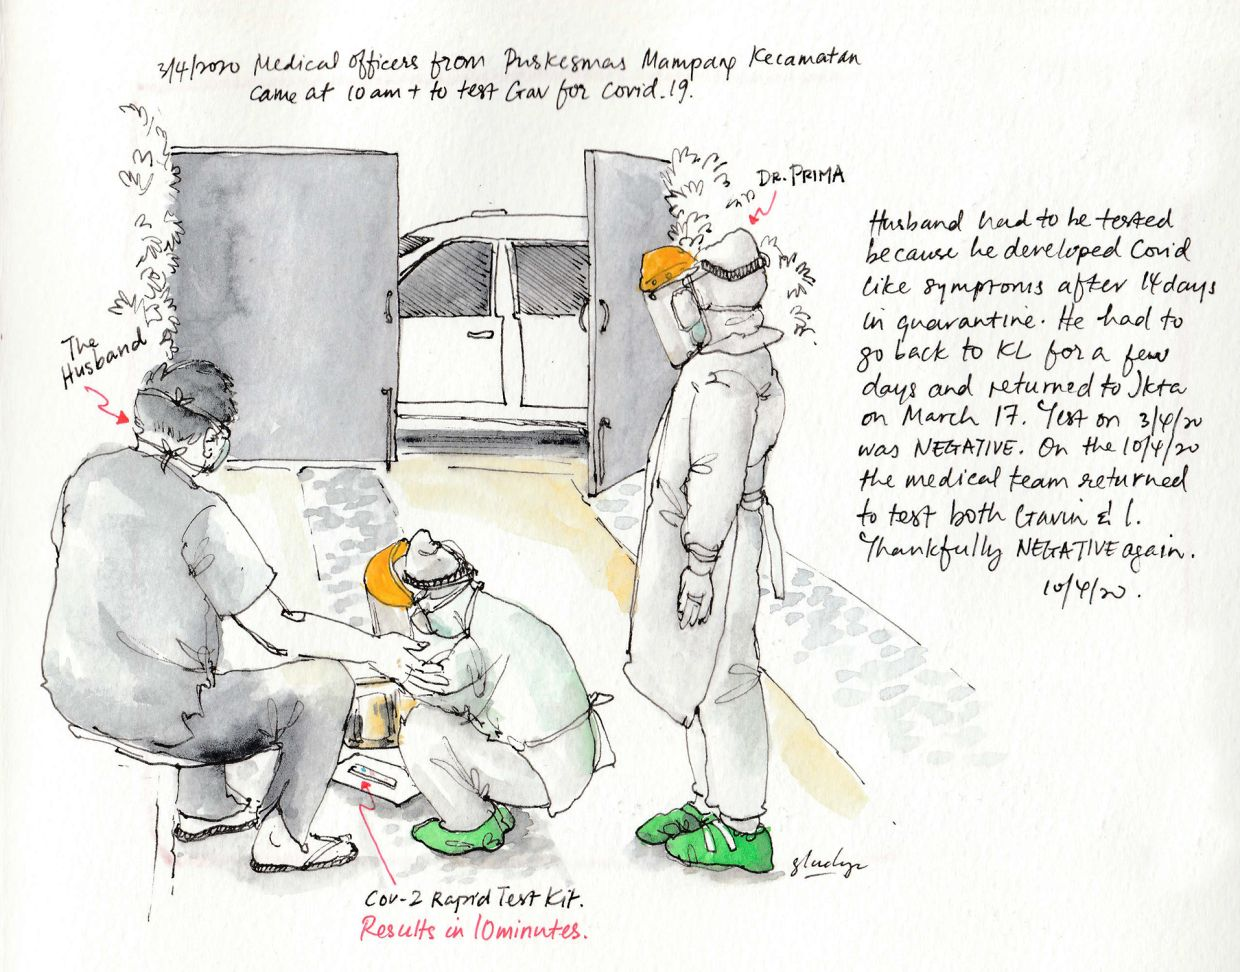 Teo-Simpson sketched a scene where Indonesian medics came to her home to test her husband for Covid-19.